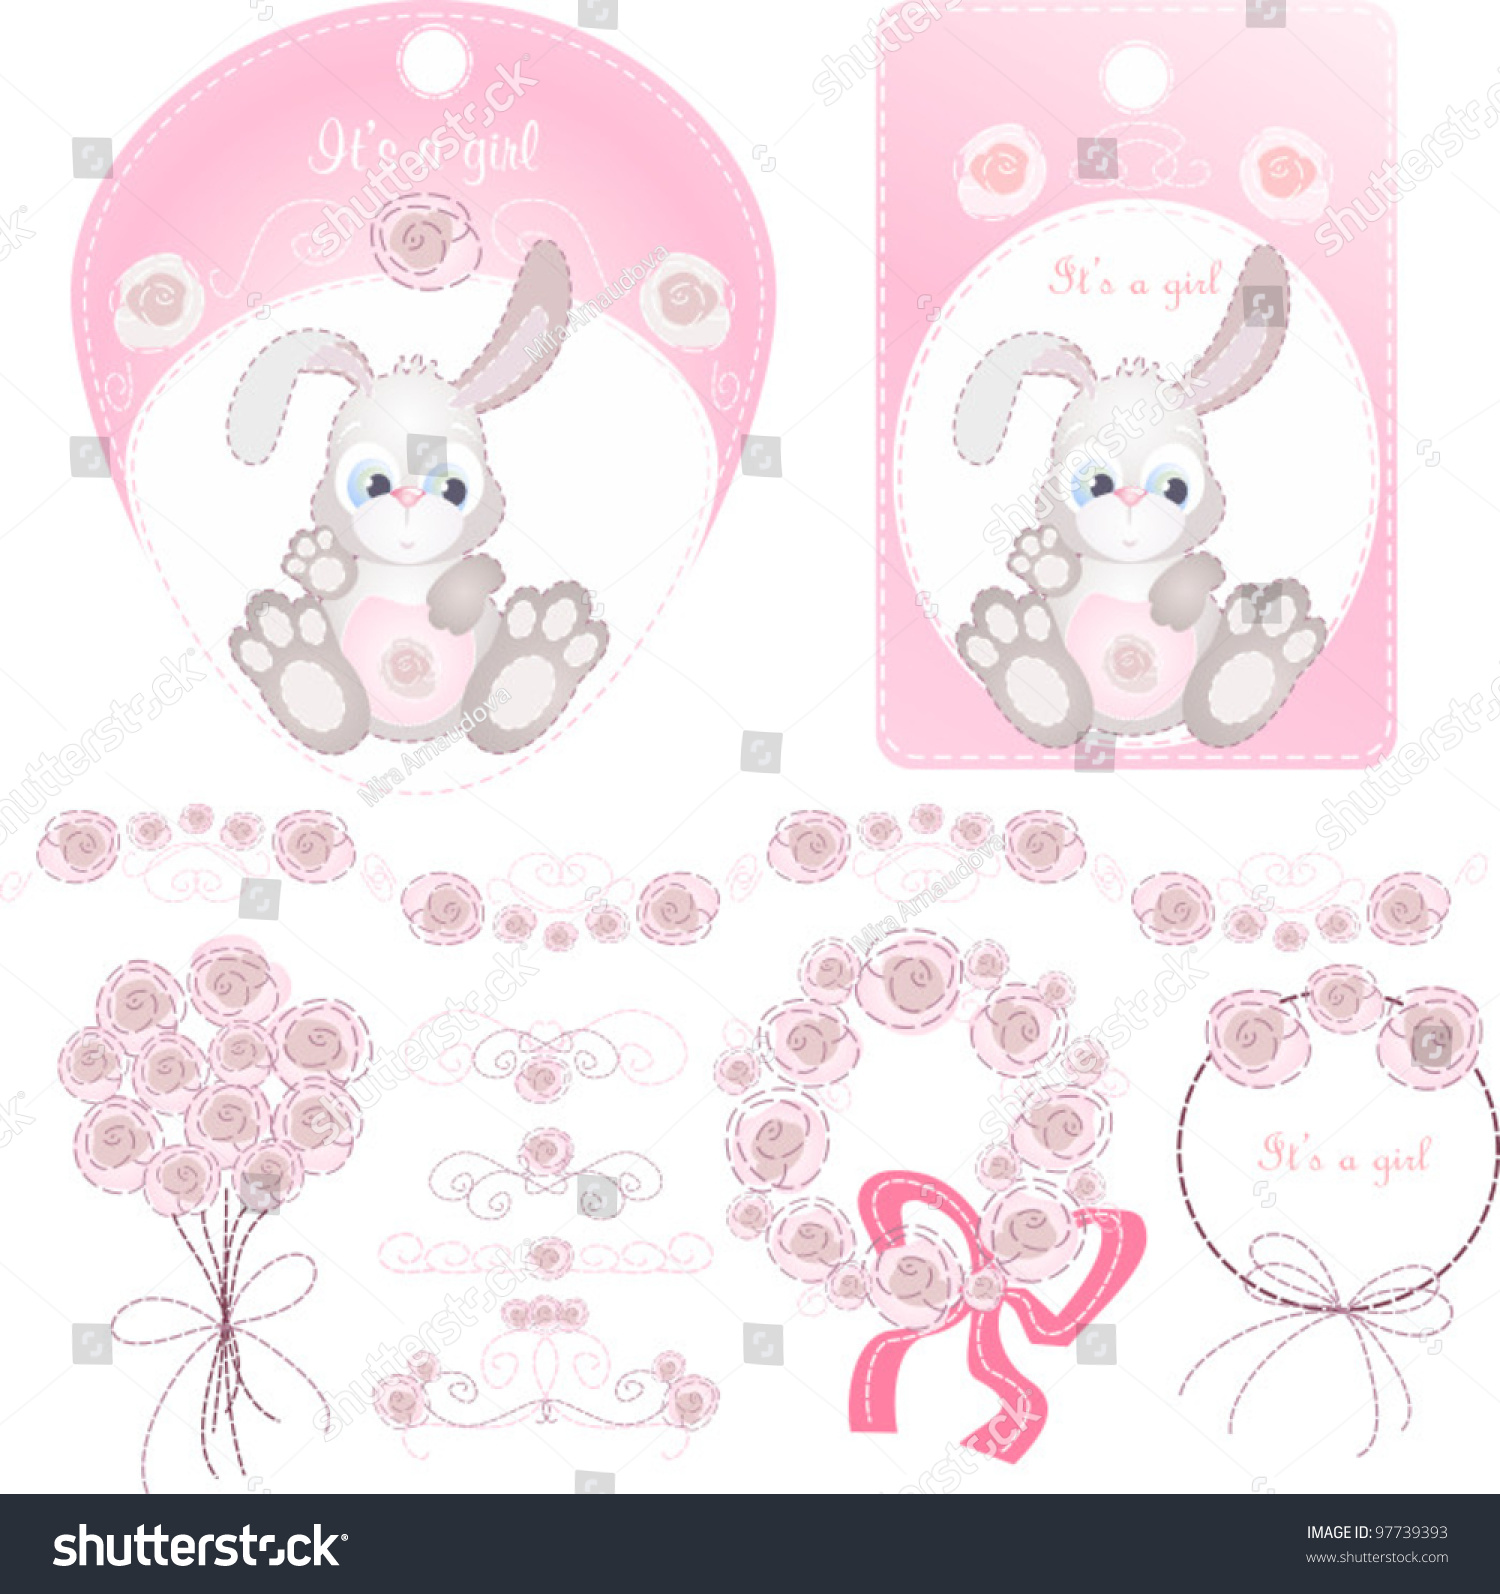 New baby ornaments - Vector Labels And Design Ornaments For New Born Baby Girl